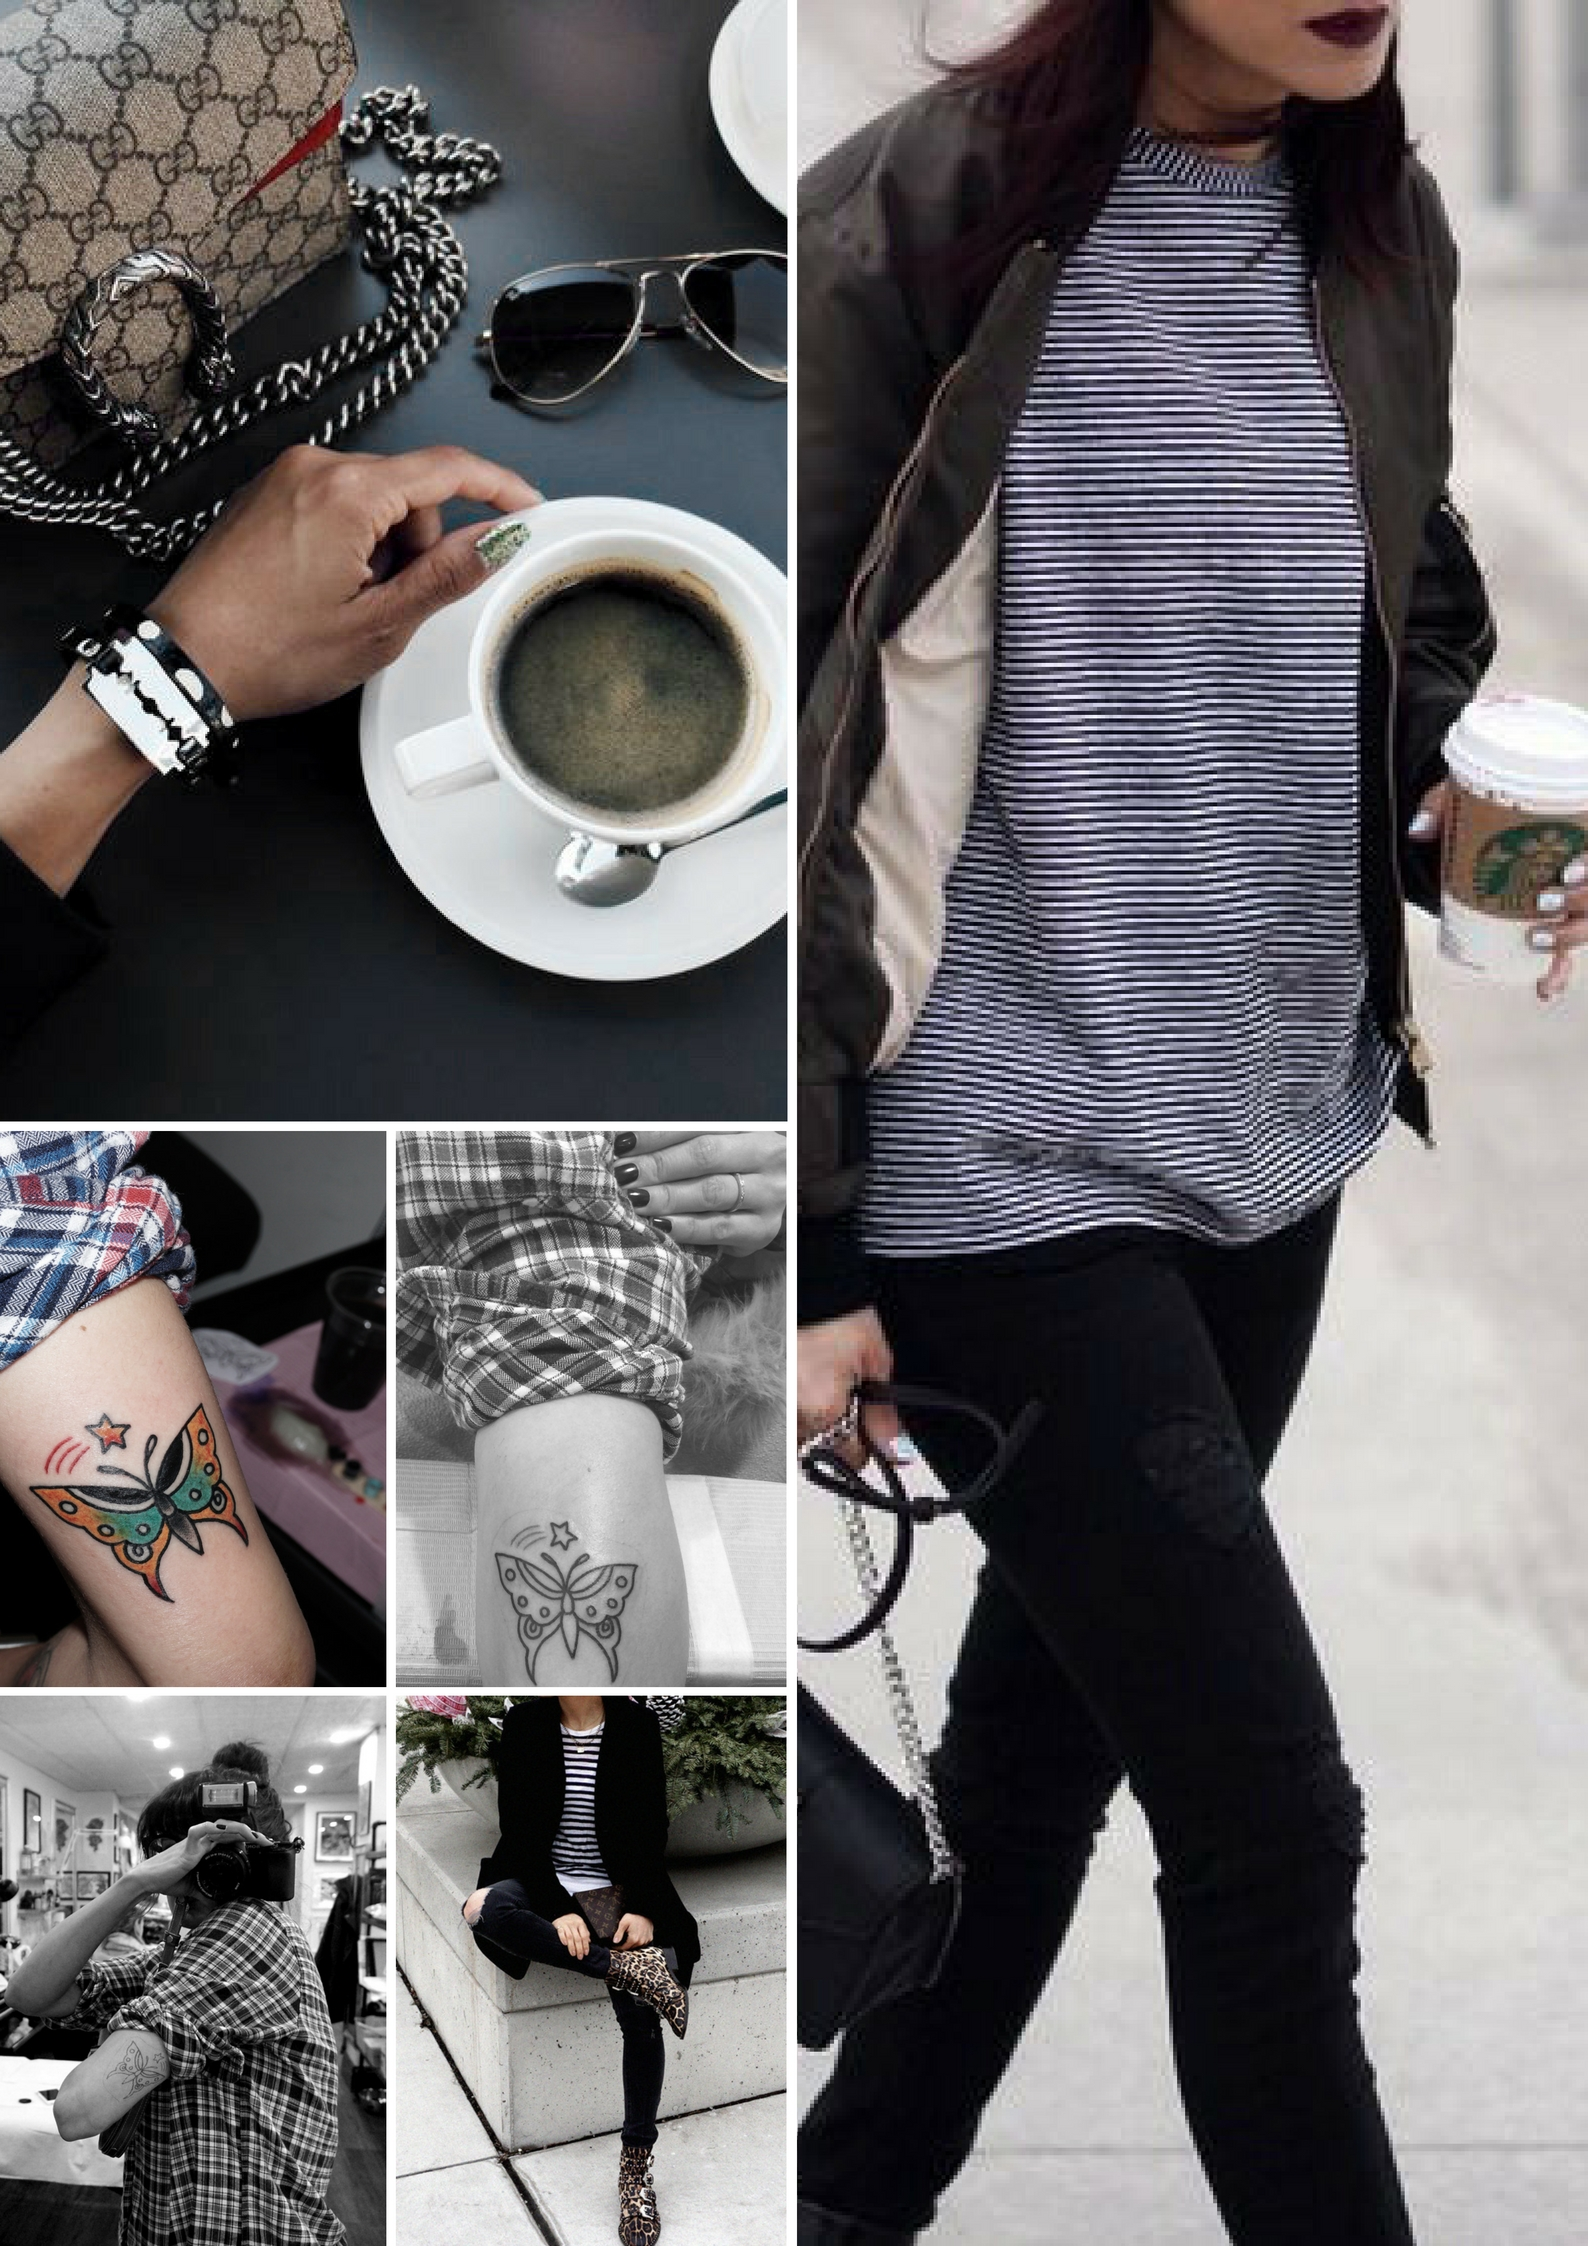 Butterfly tattoo from passage tattoo toronto by german shible -old school - coffee and gucci - street style 1 .jpg